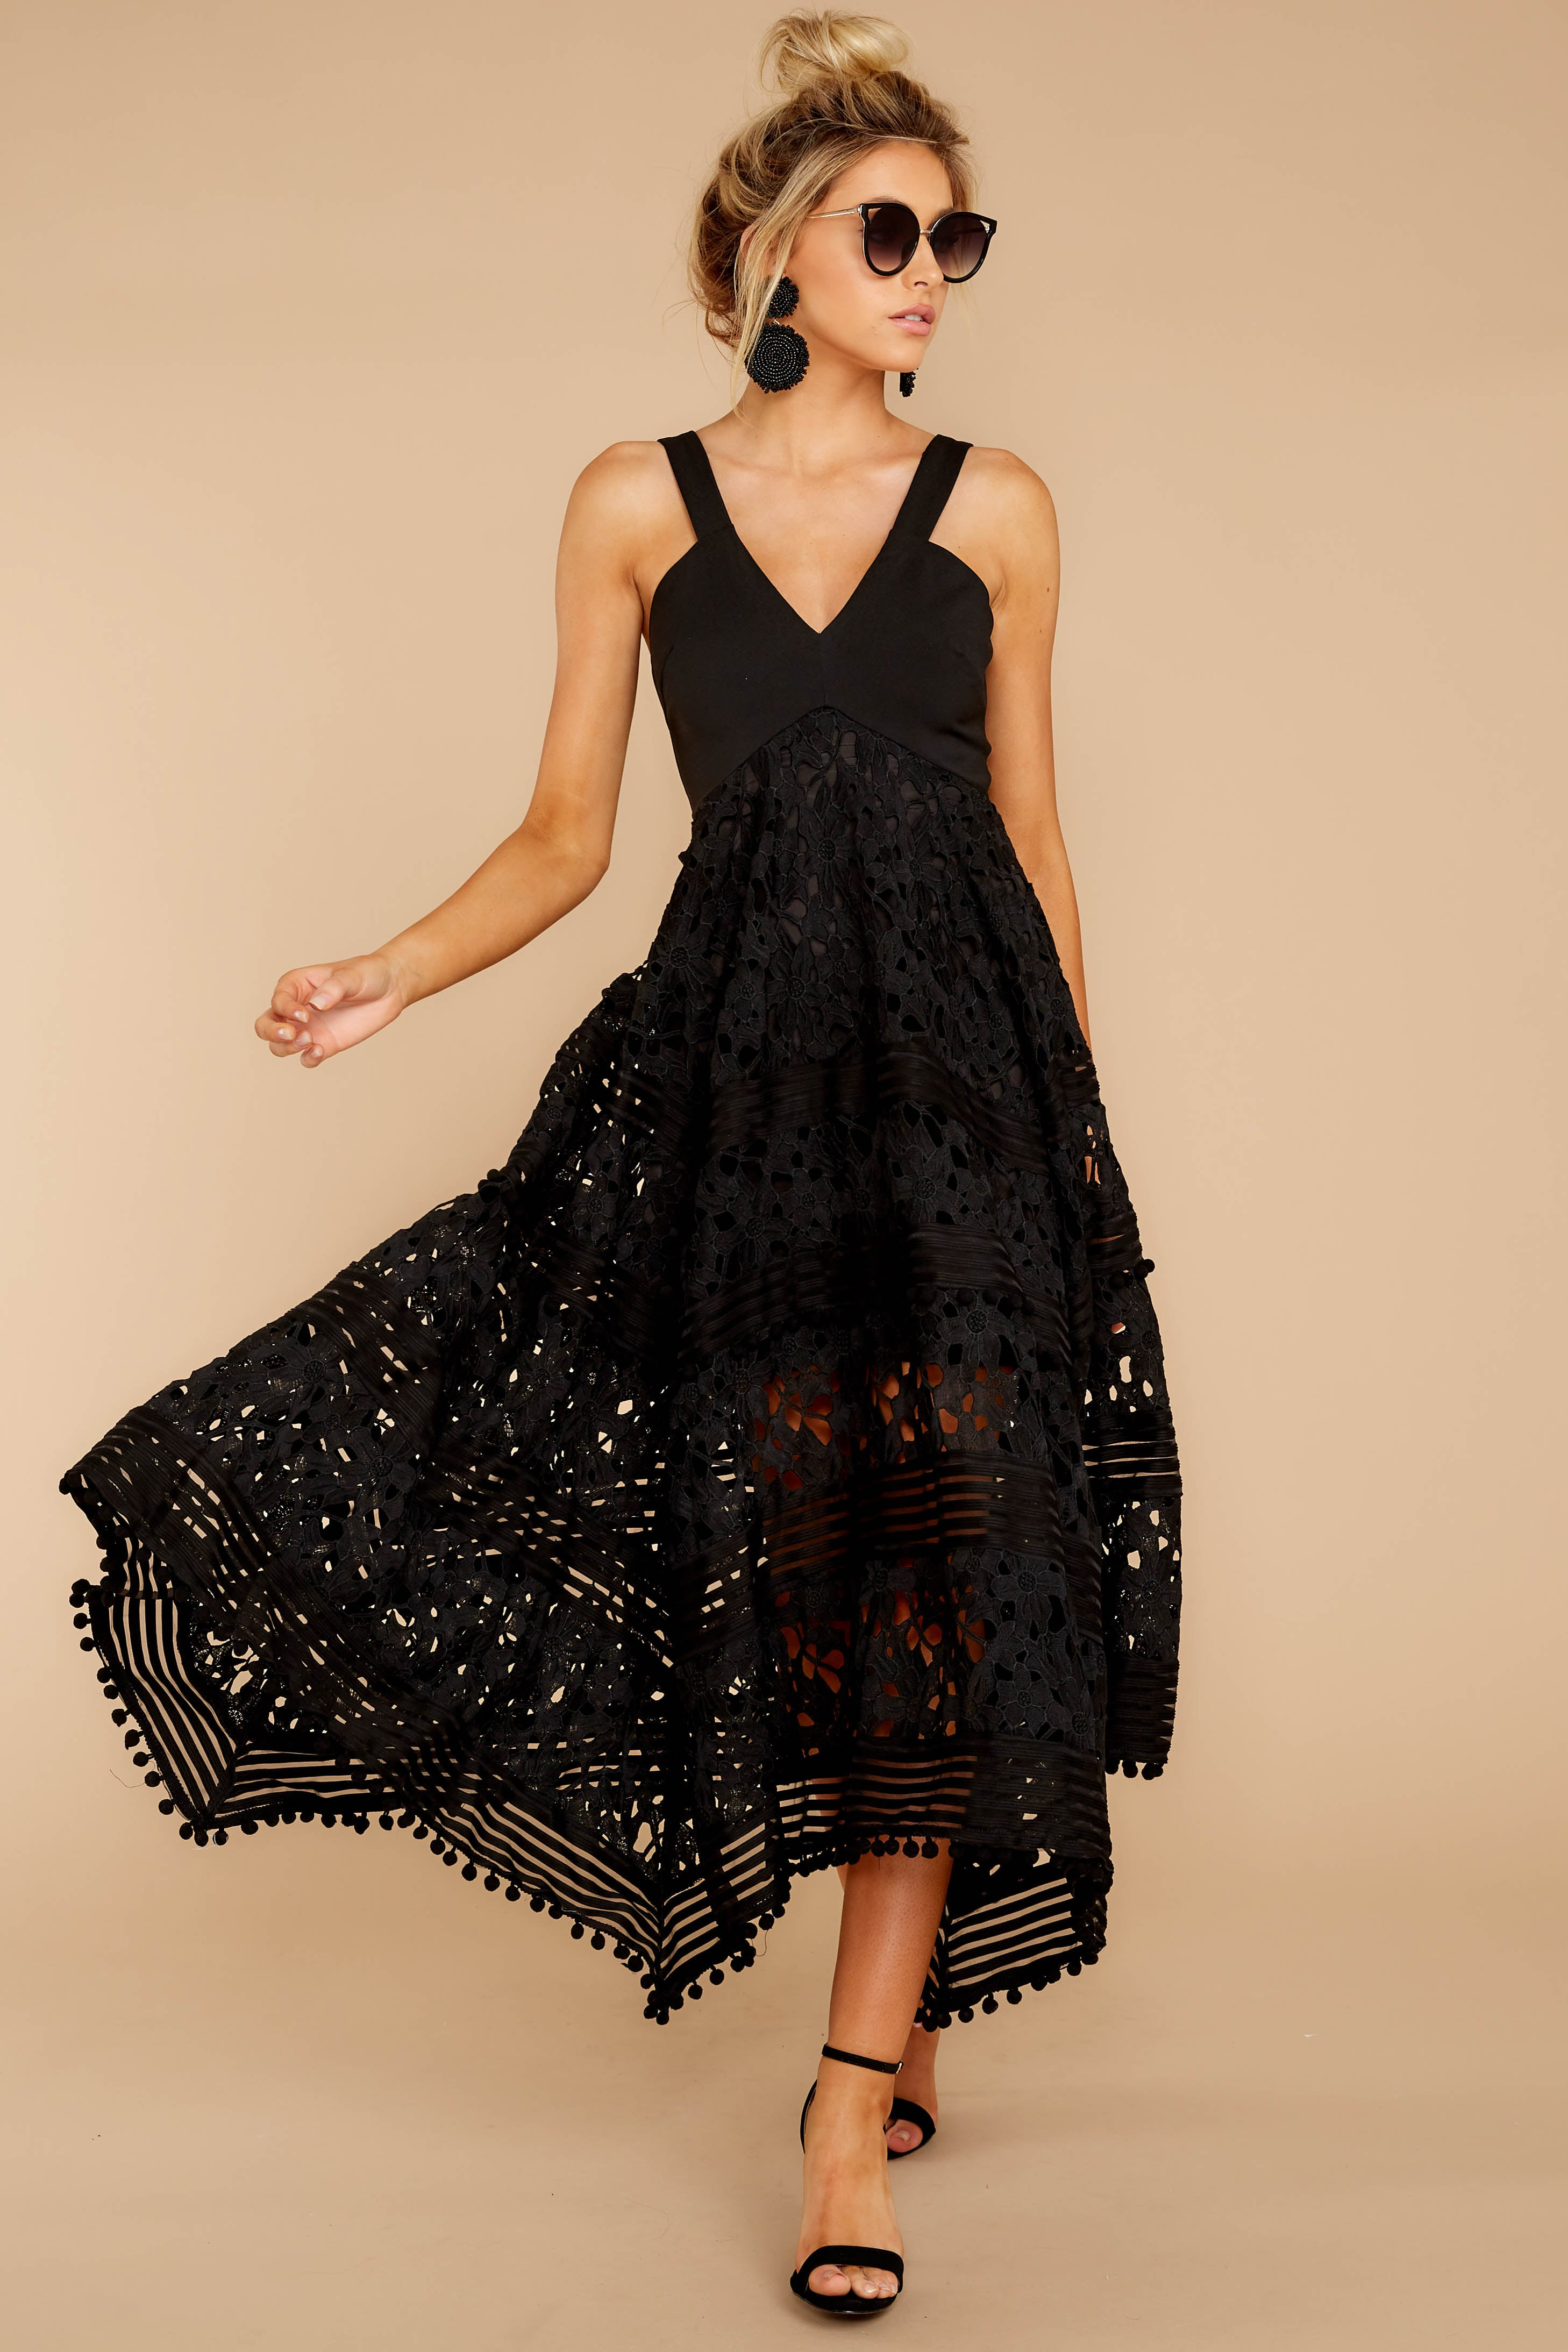 7 Above And Beyond Black Maxi Dress at reddress.com